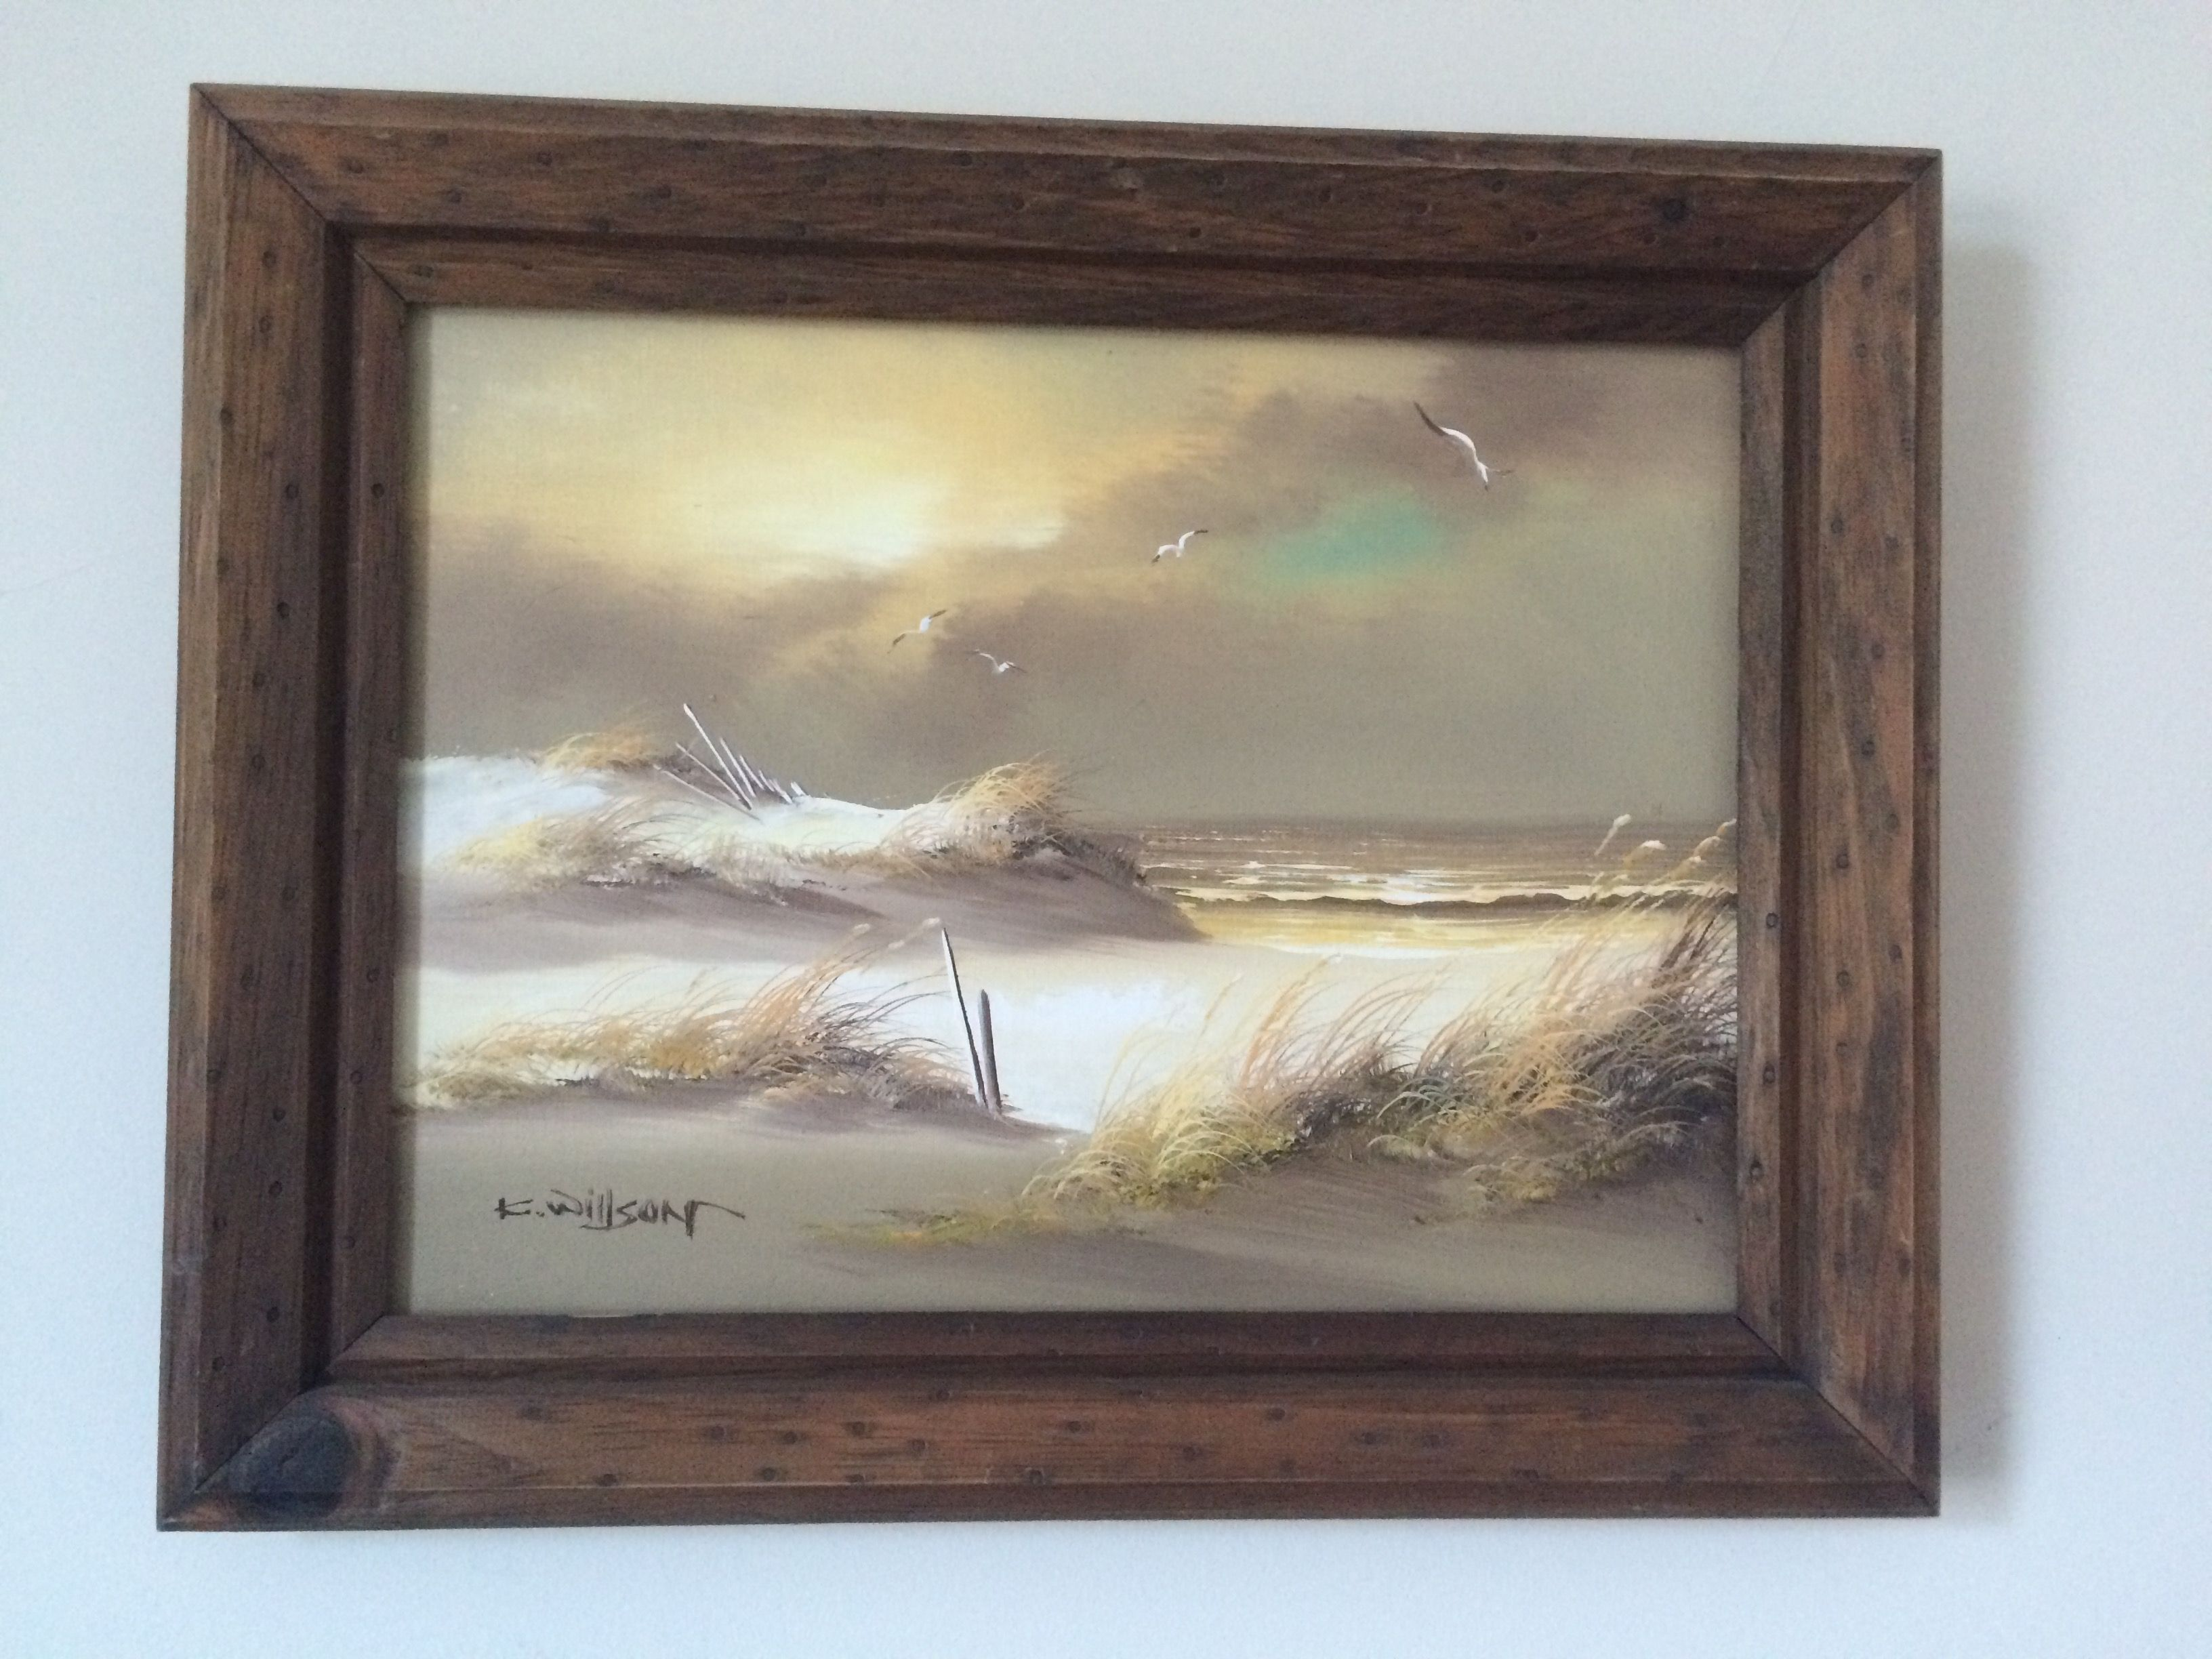 Original Acyrlic On Canvas Seascape Framed Signed By Artist K Wilson Approx 15 5 X 19 75 Including Seascape Paintings Art Painting Painting Prints